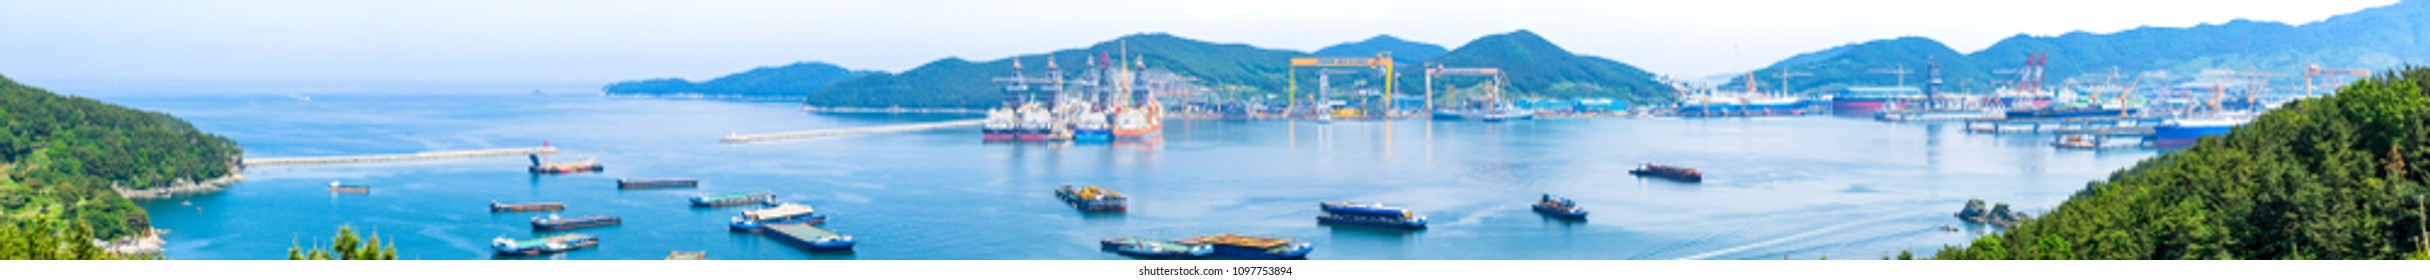 GEOJE ISLAND, SOUTH KOREA - MAY 13, 2018 : Bay of Daewoo Shipbuilding and Marine Engineering (DSME) in Okpo city, The bay consists of Marine engineering facilities, ships and off shore platforms